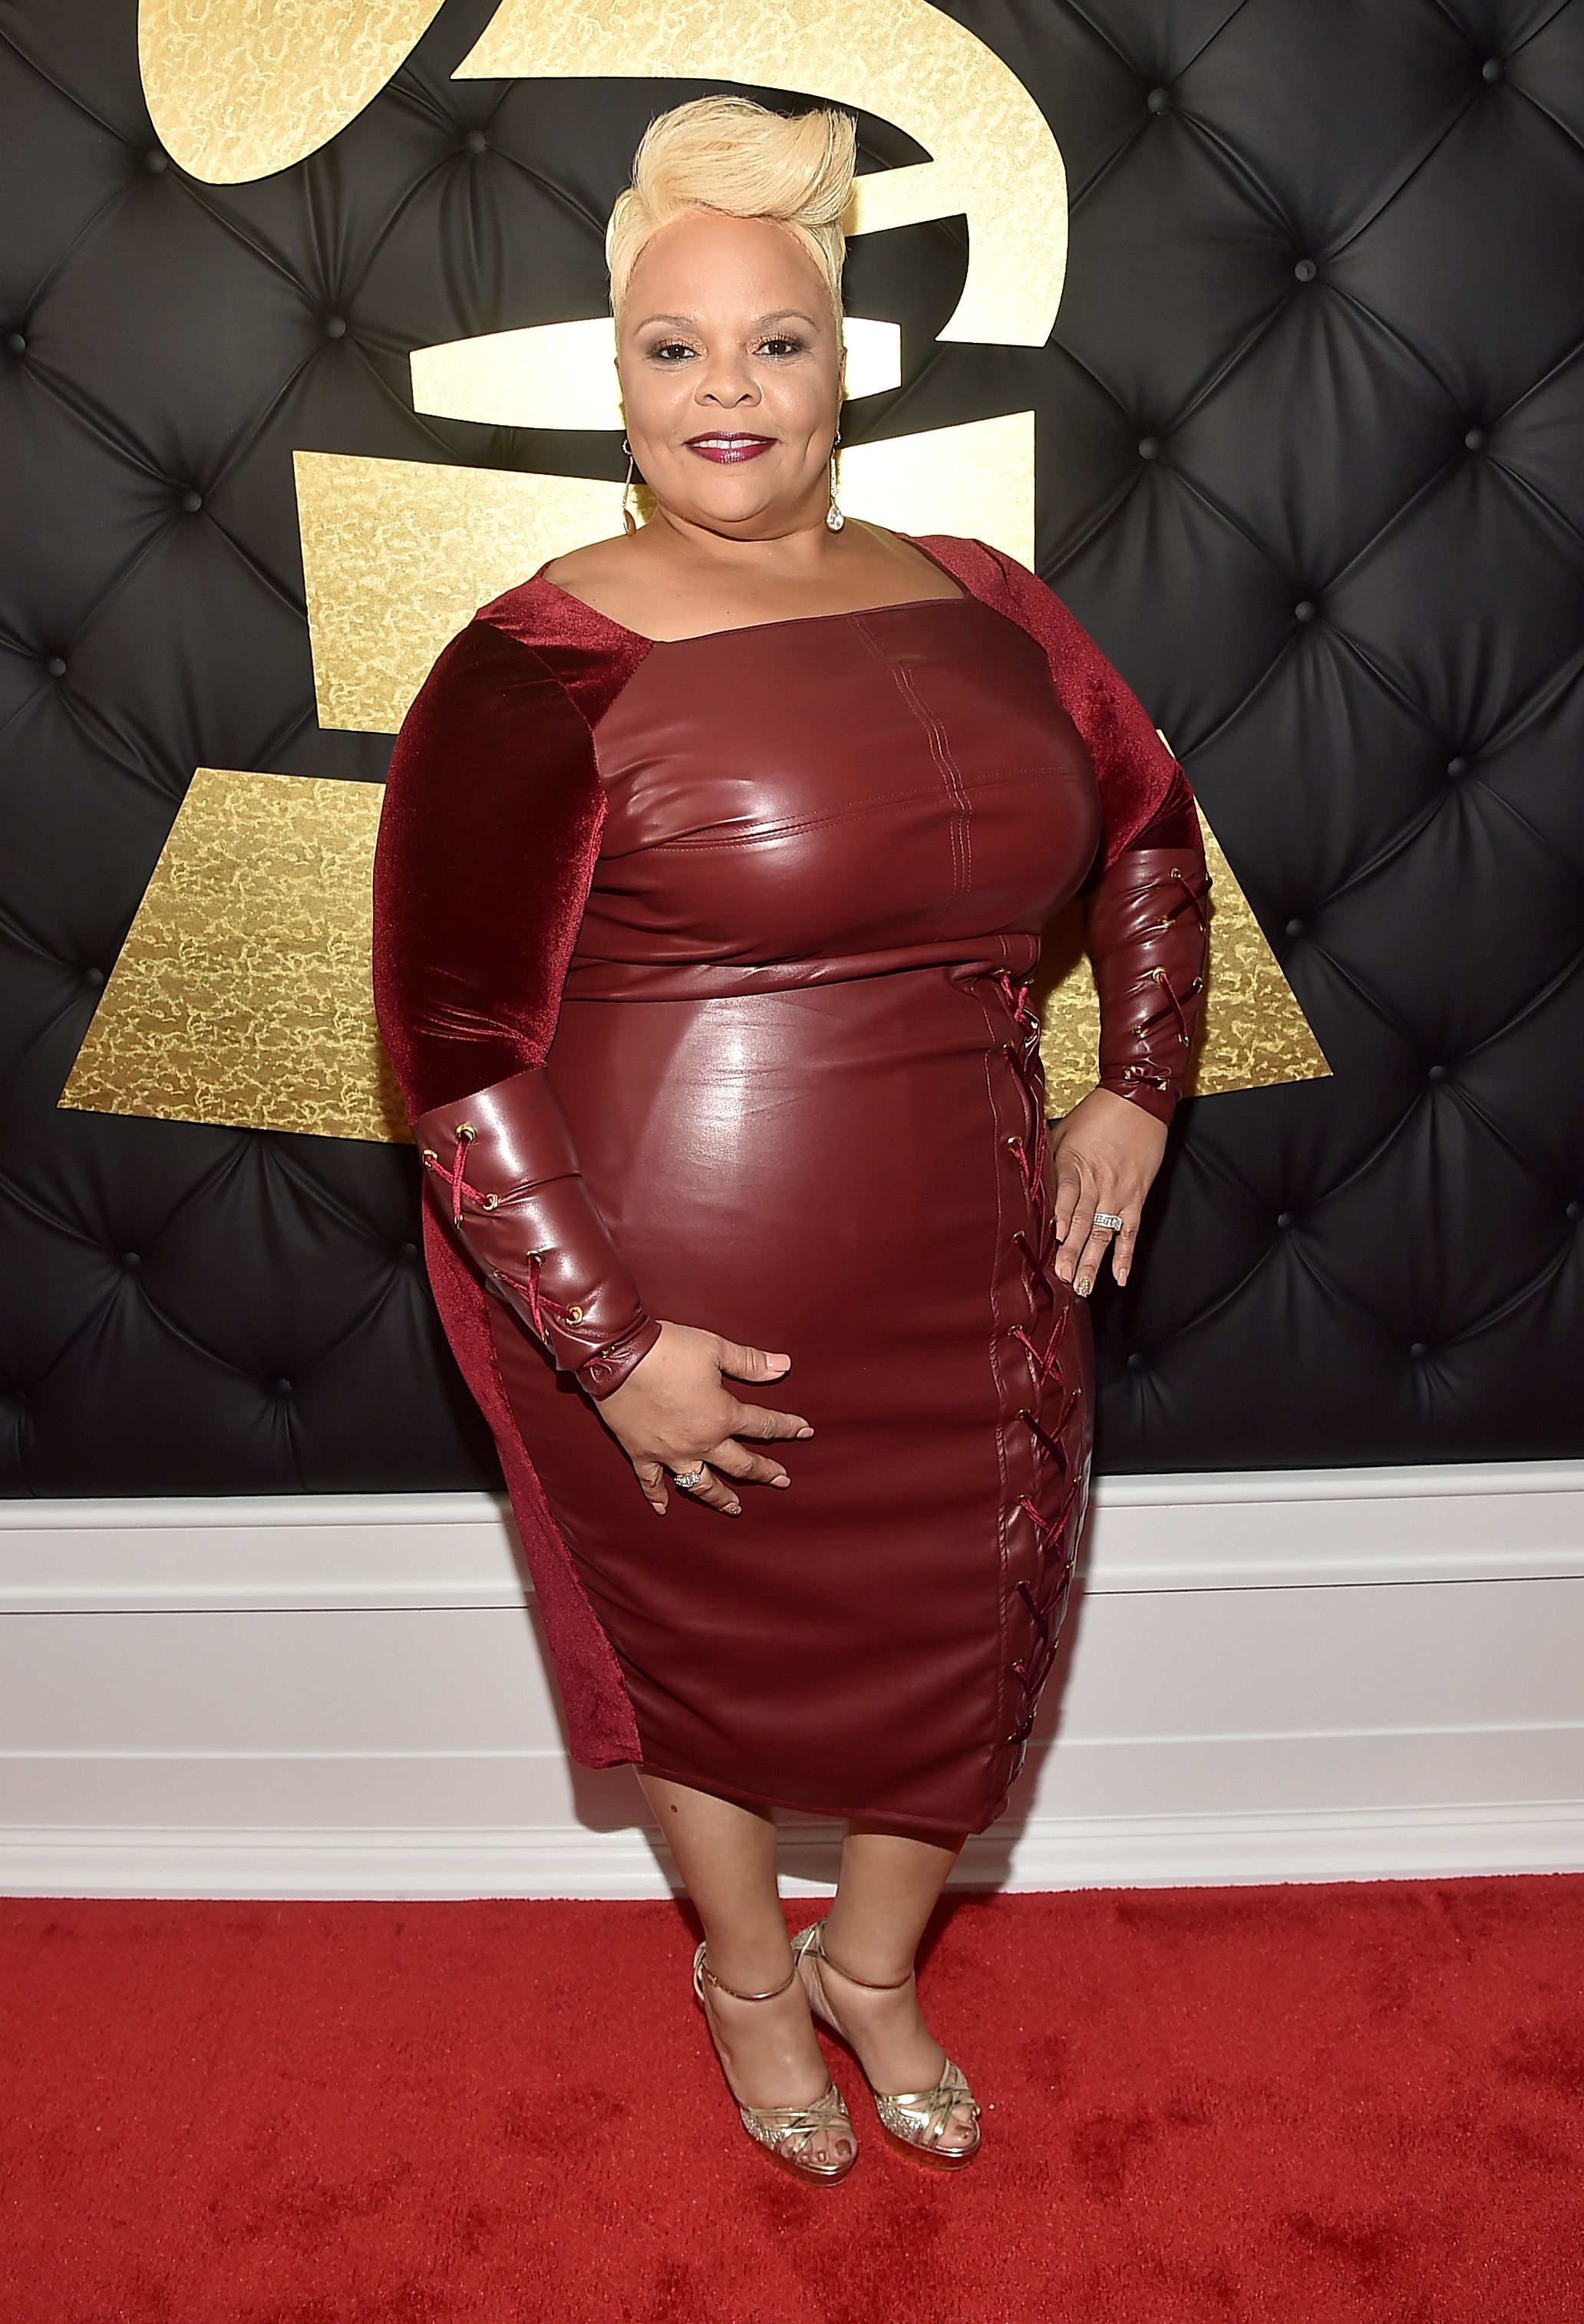 Tamela Mann at The 59th Grammy Awards at STAPLES Center on February 12, 2017 | Photo: Getty images